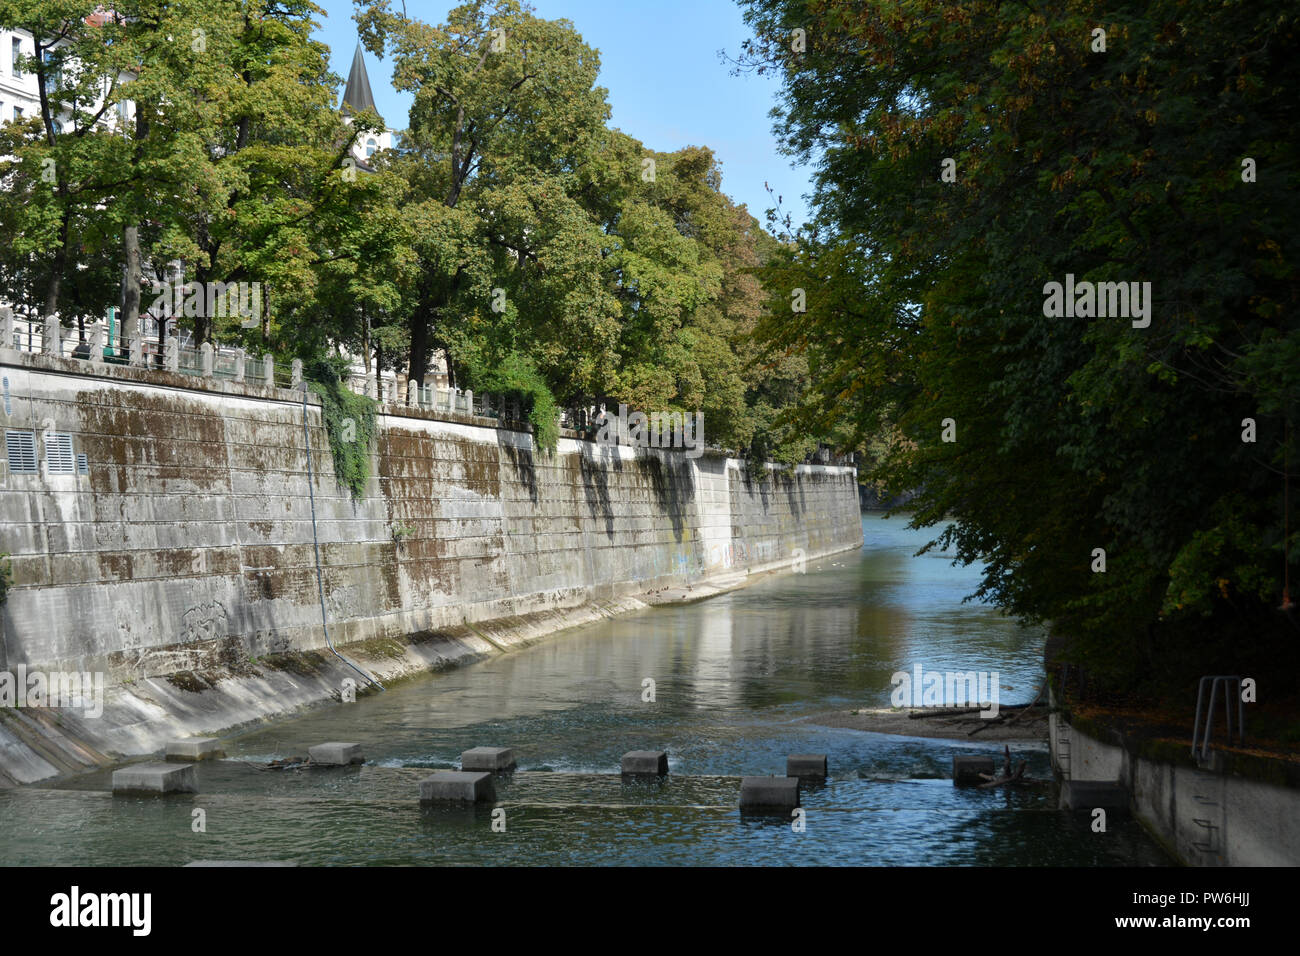 The River Isar at low level in Munich - Stock Image